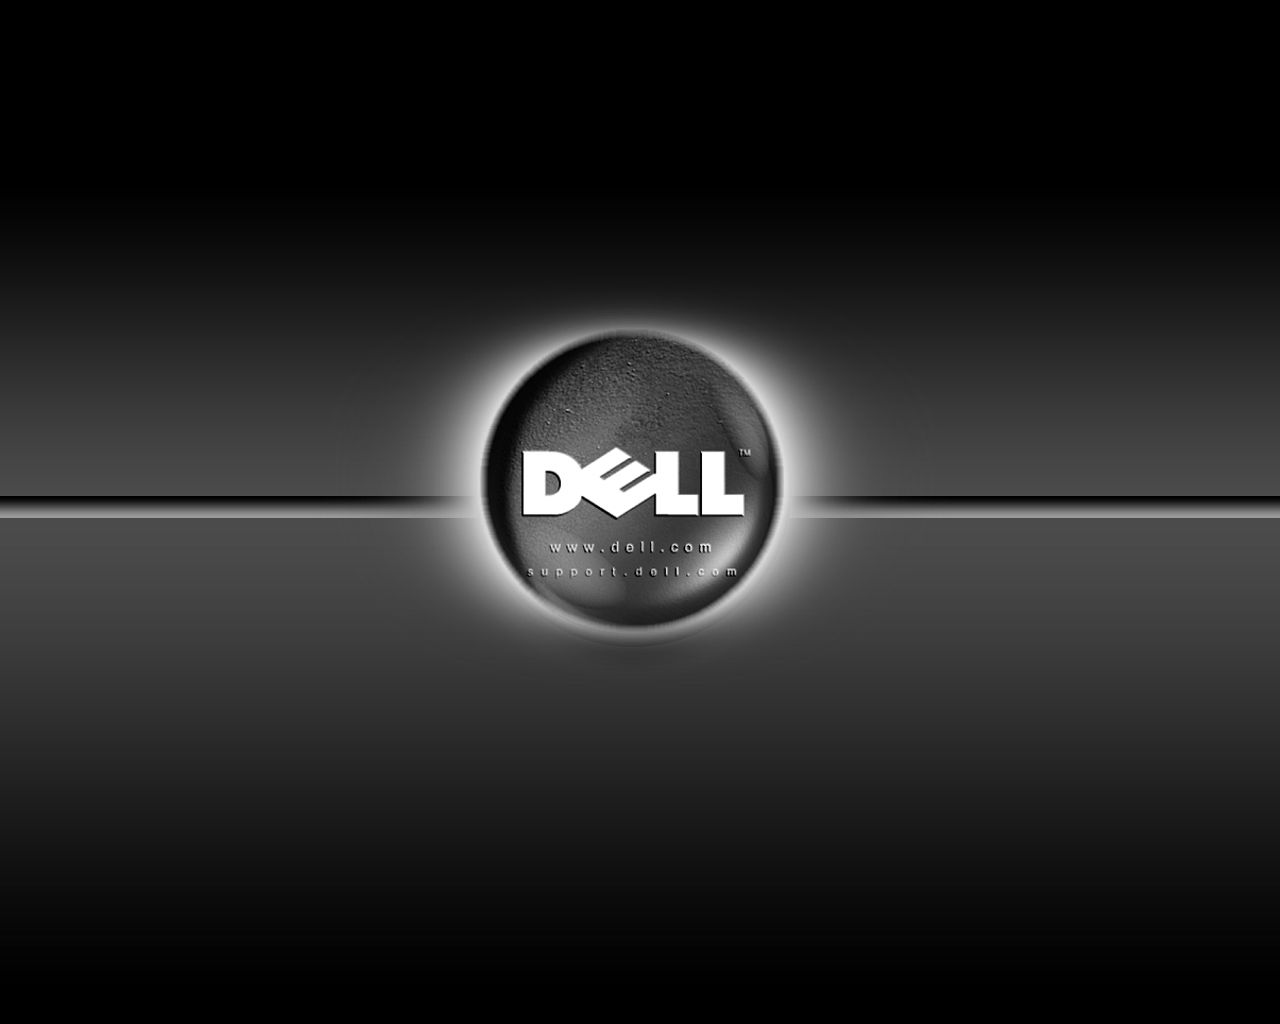 Dell desktop backgrounds hd wallpapers pinterest dell dell desktop backgrounds biocorpaavc Images